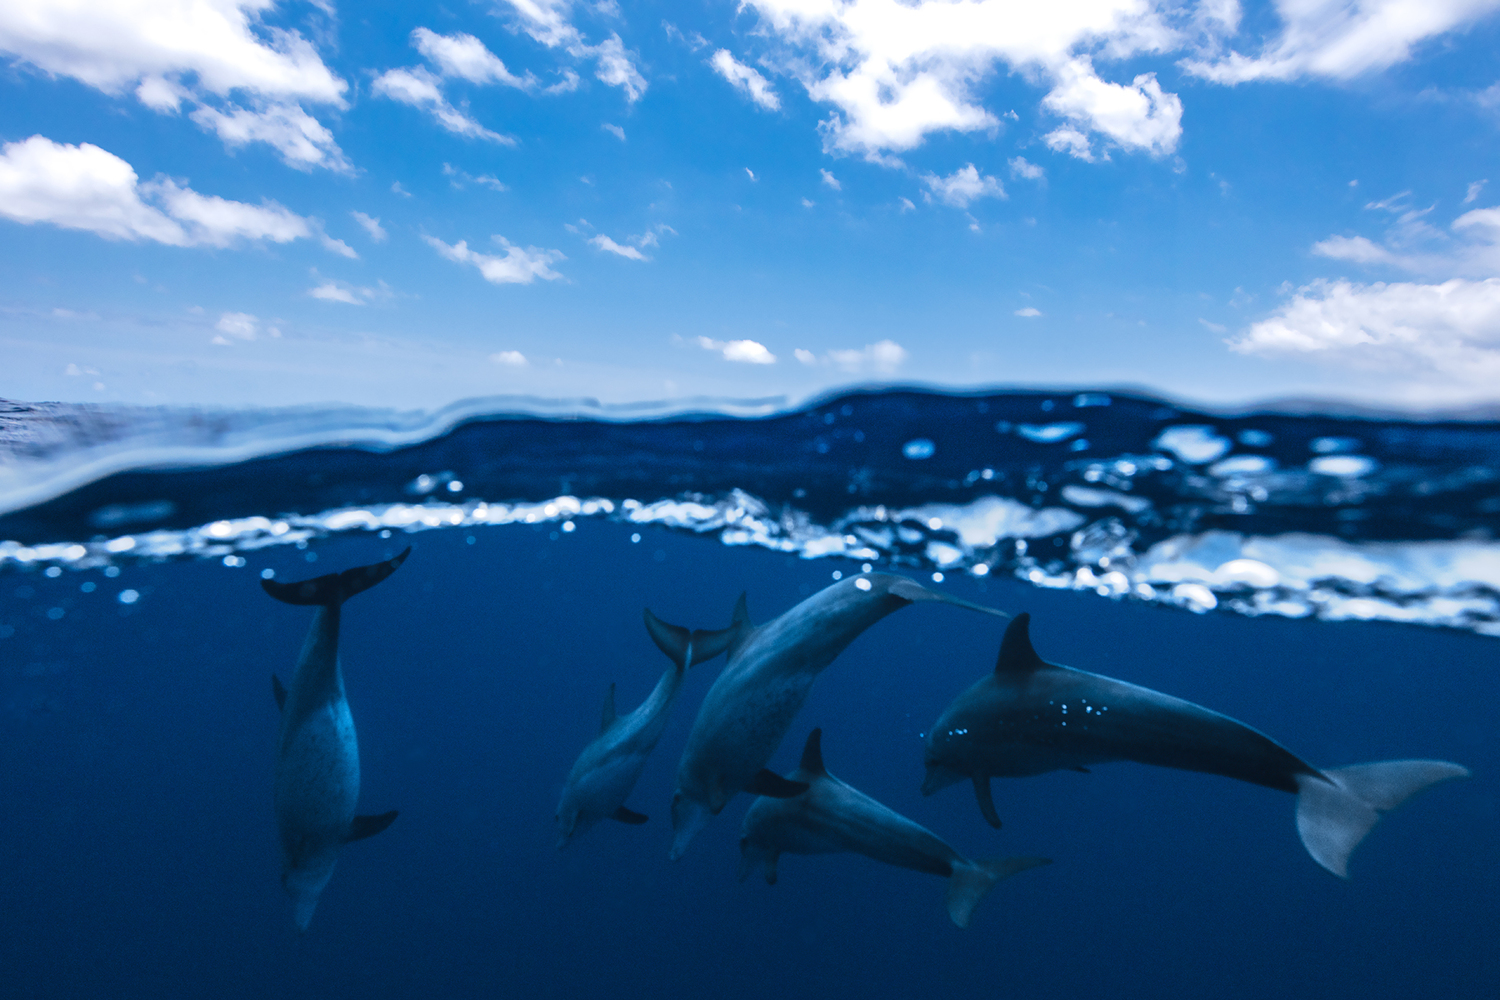 Fotomurale Between Air And Water With The Dolphins